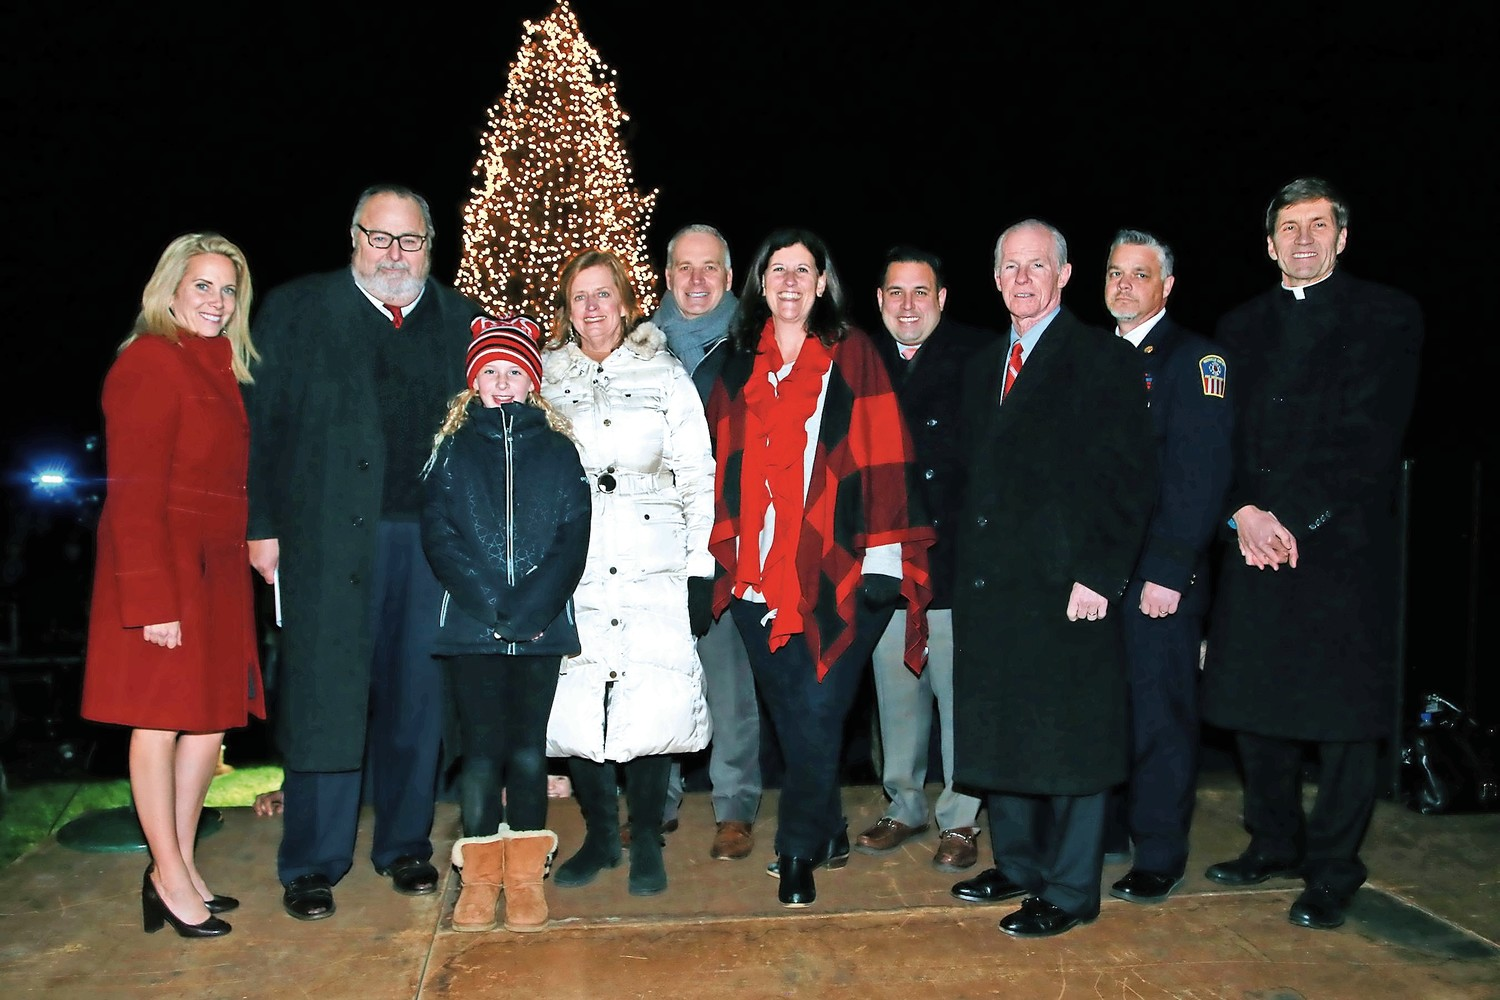 Supervisor Laura A. Gillen, Mayor Fran Murray, Watson School 5th grader Ellie Lennon, Assemblywomen-Elect Judy Griffin, Trustee Emilio Grillo, Deputy Mayor Kathy Baxley, Councilman Anthony D'Esposito, Village Justice William Croutier, Chief Brian Cook and Monsignor William Koenig.